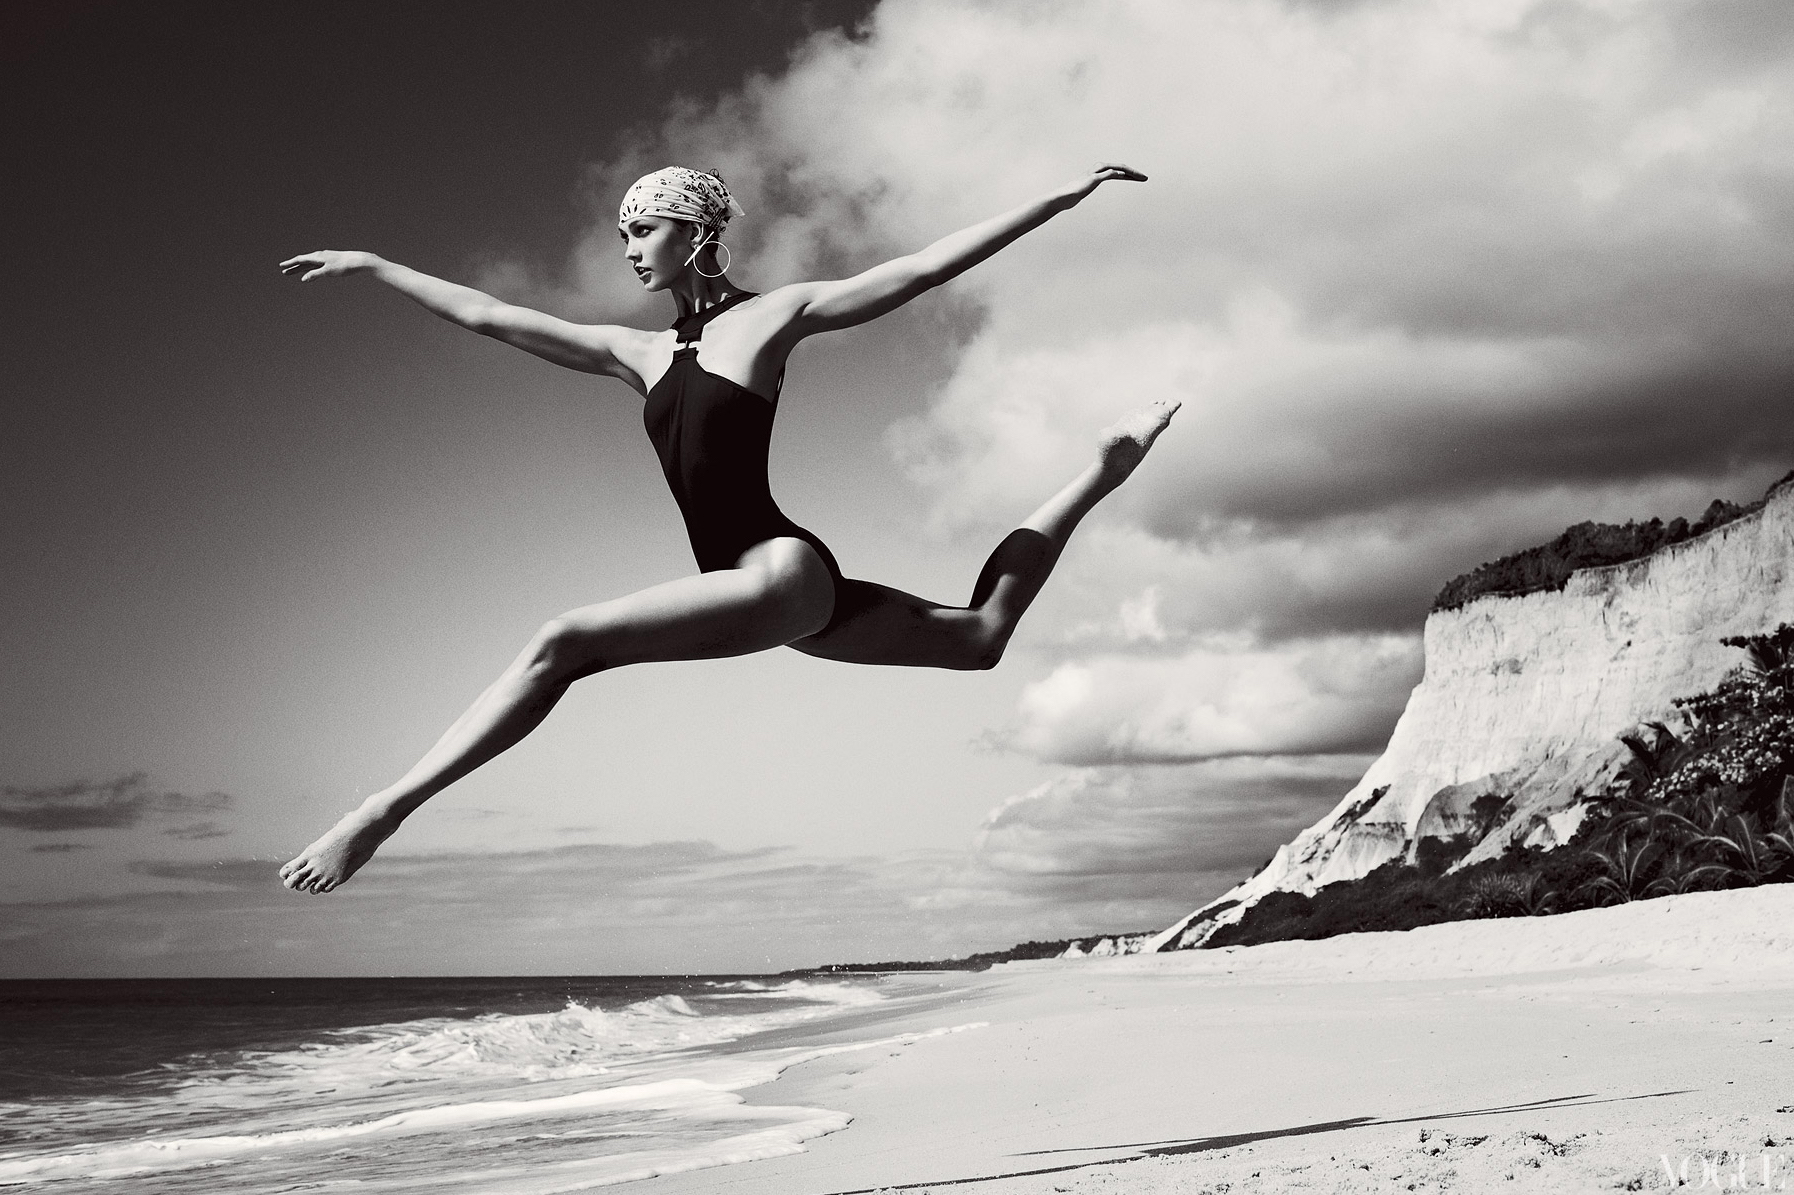 2012-karlie-kloss-photographed-by-mario-testino-for-vogue-july-2012-big.jpg